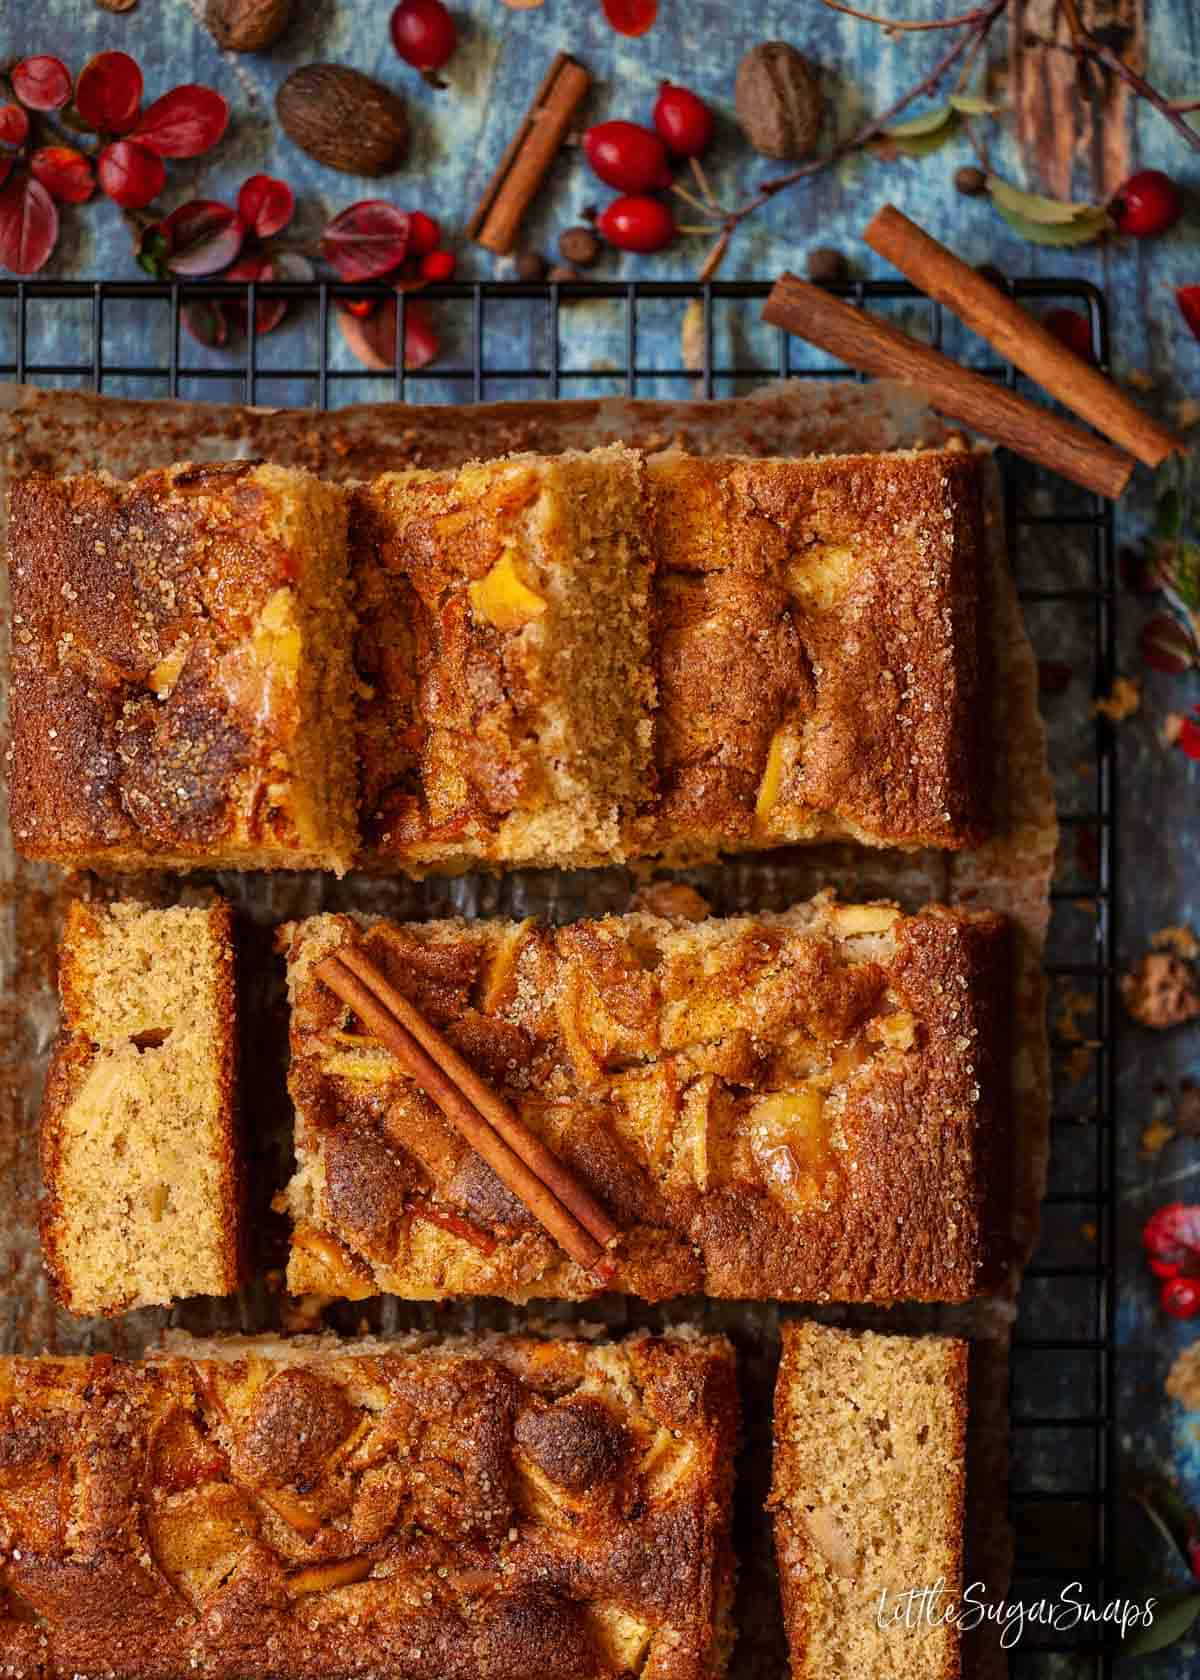 Pieces of traybake cake topped with apple on a wire rack with spices.